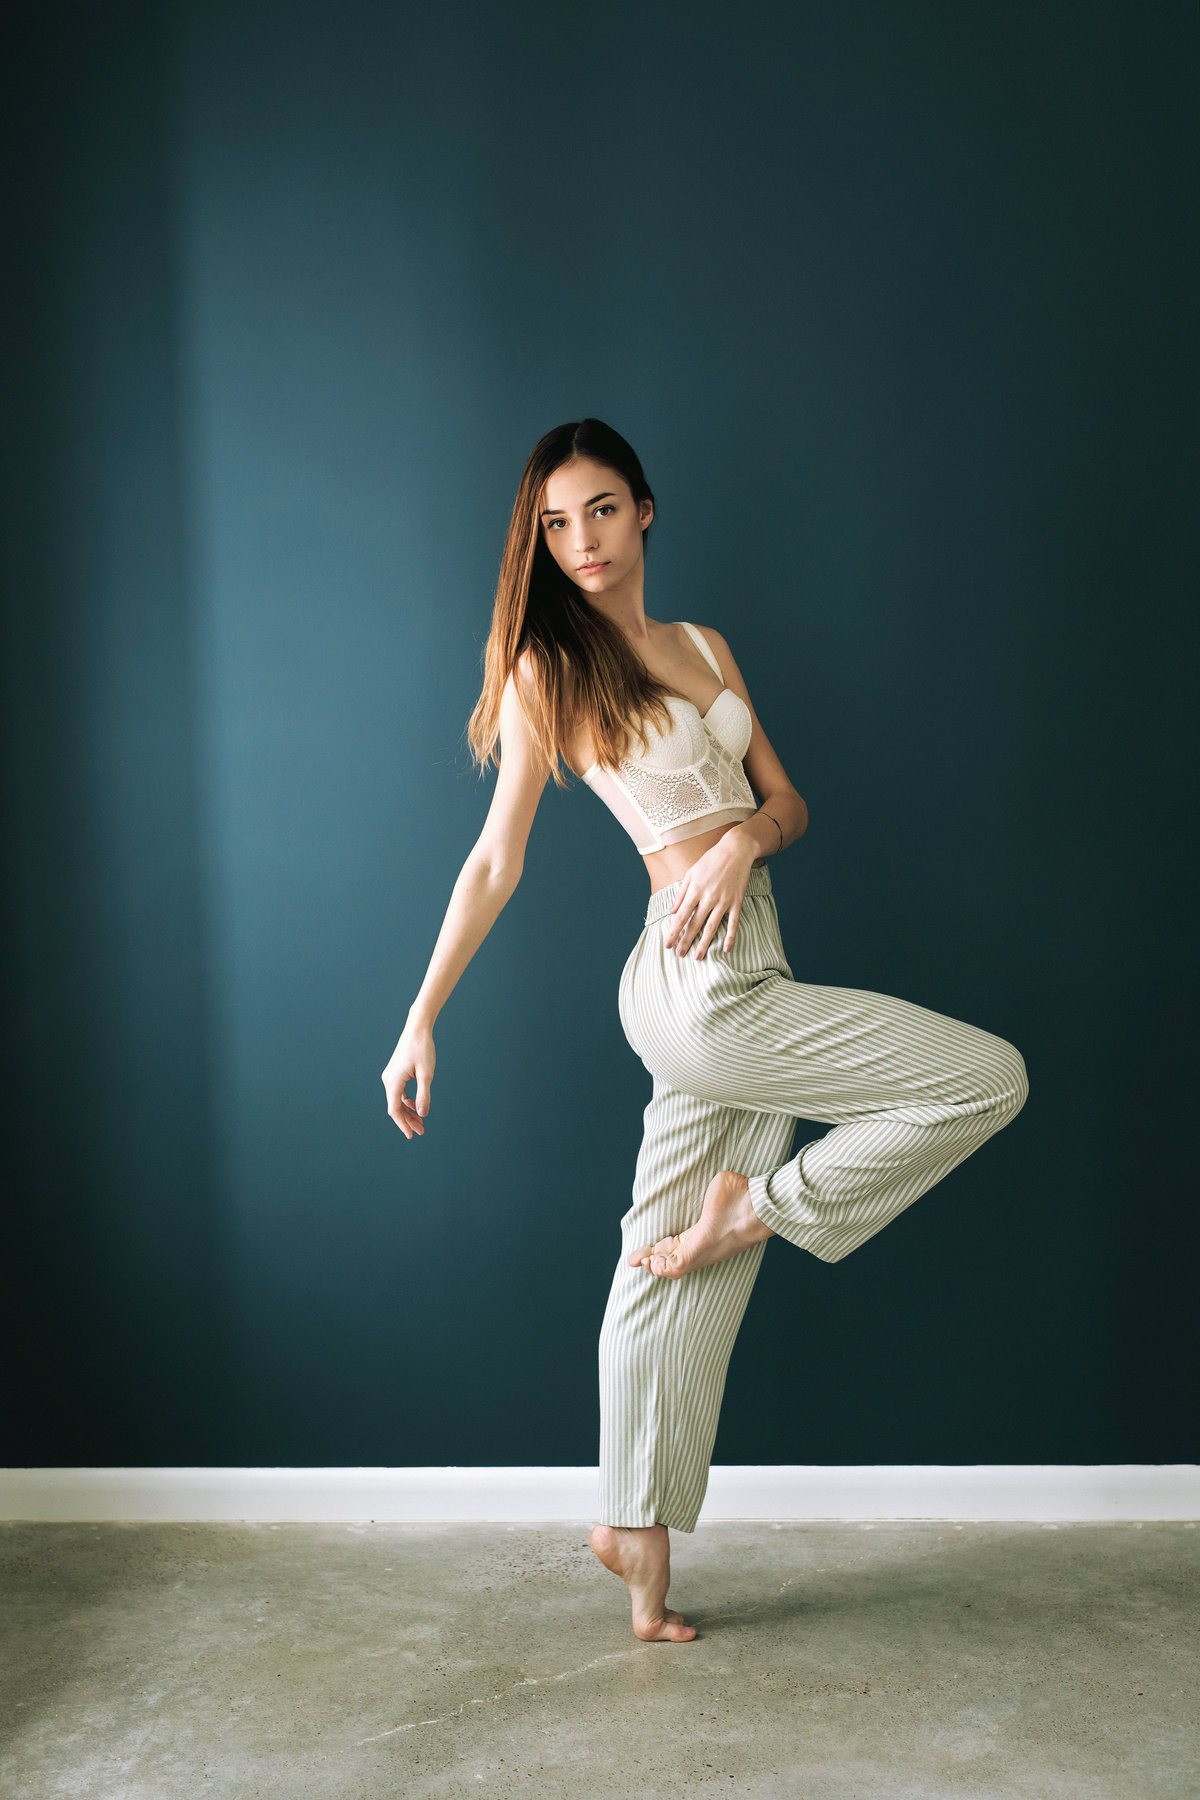 Brightly lit portrait of woman in dance pose looking camera center.